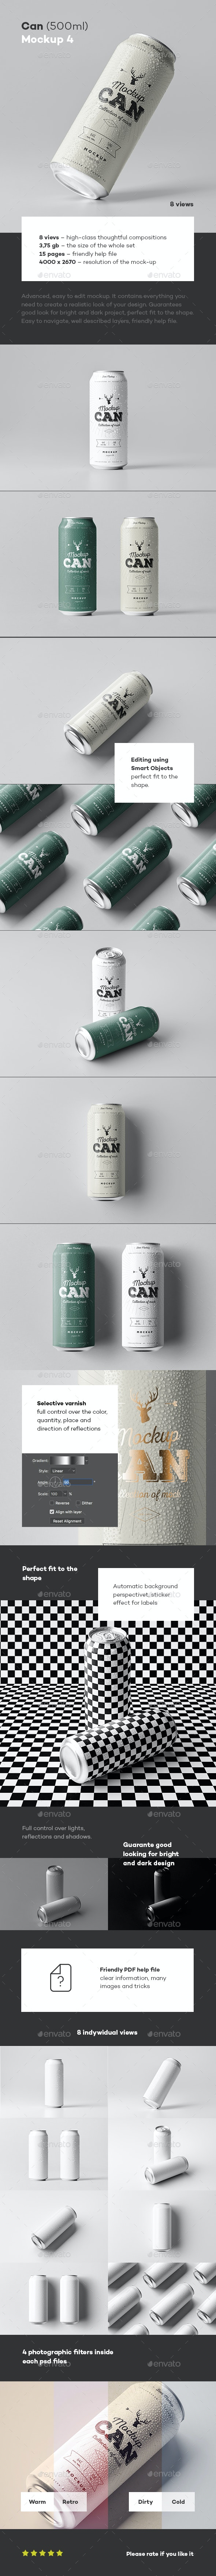 Can Mock-up 4 - Food and Drink Packaging